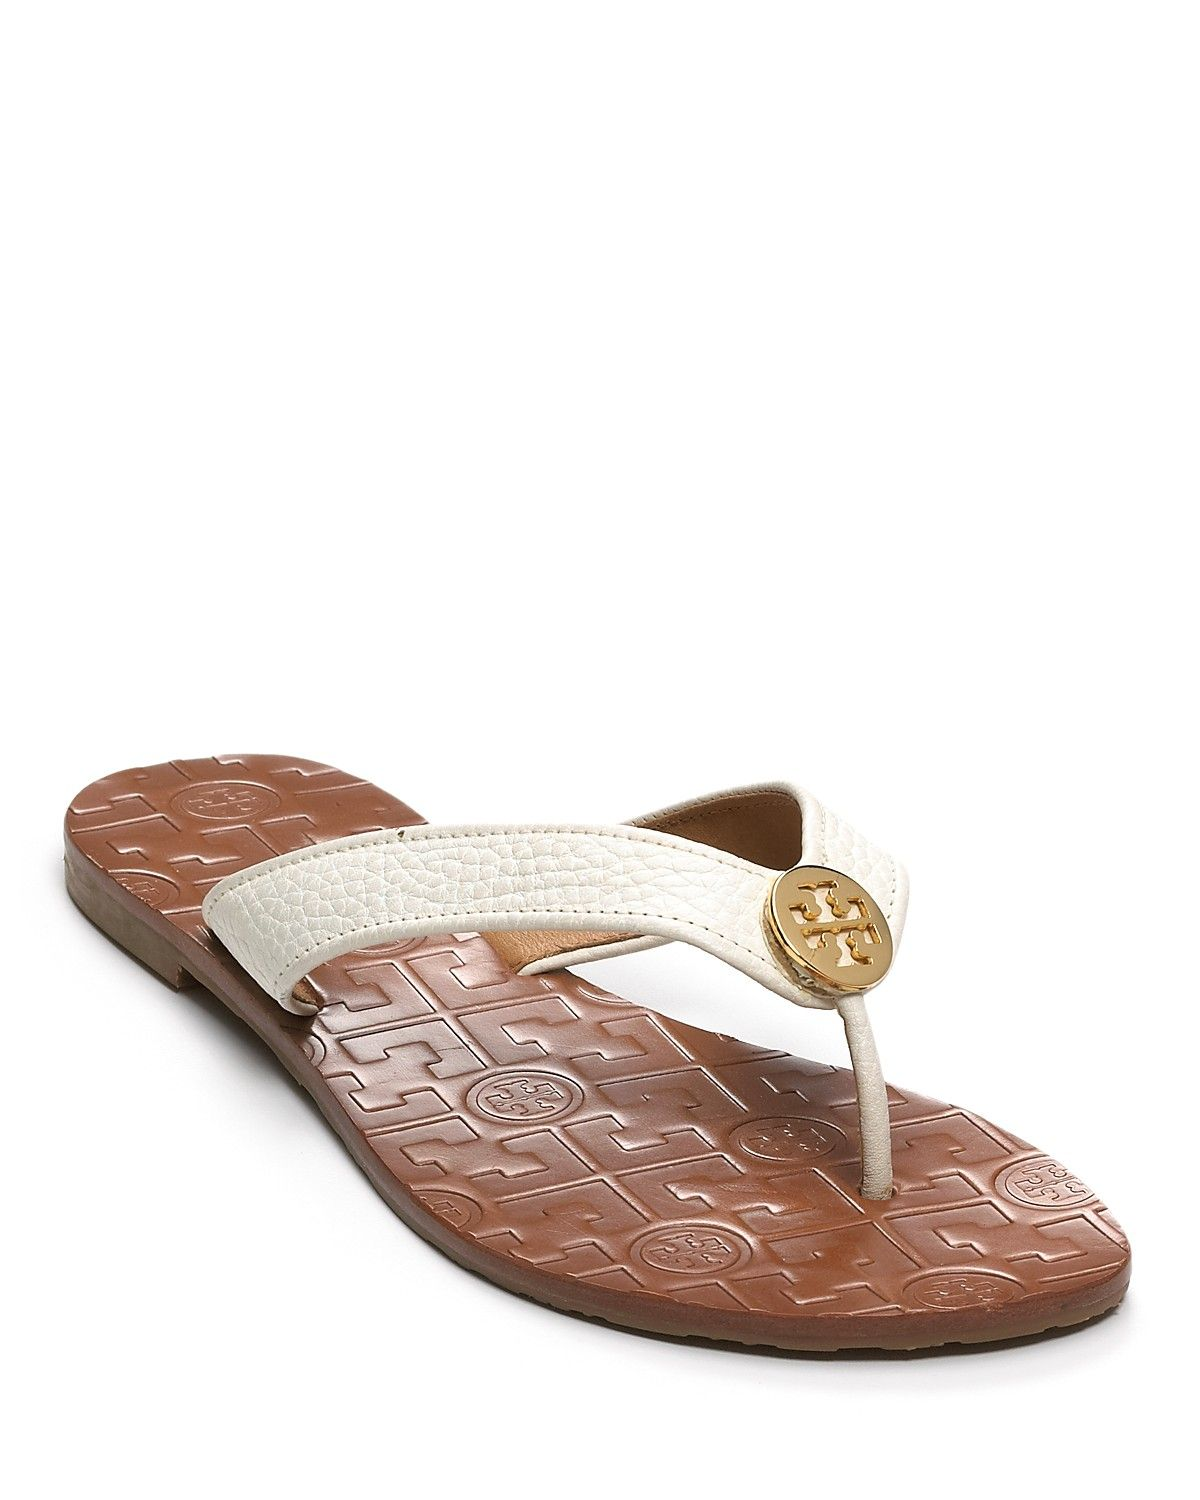 Tory Burch Flip Flops - Thora | Bloomingdale's